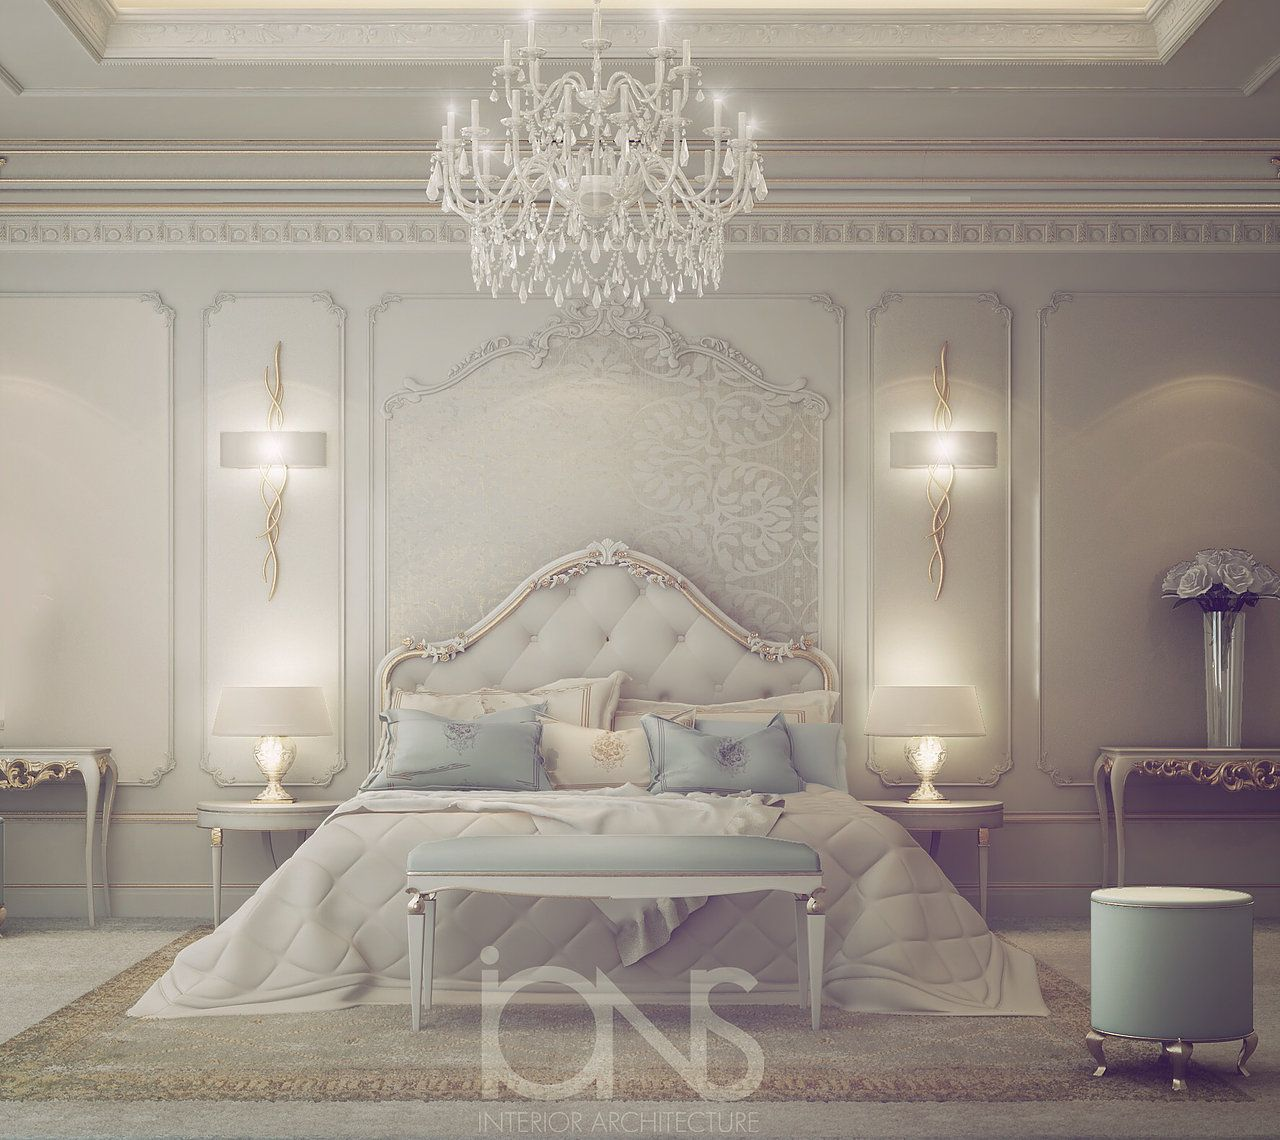 Awesome IONS One The Leading Interior Design Companies In Dubai .provides Home  Design, Commercial Retail And Office Designs Part 32